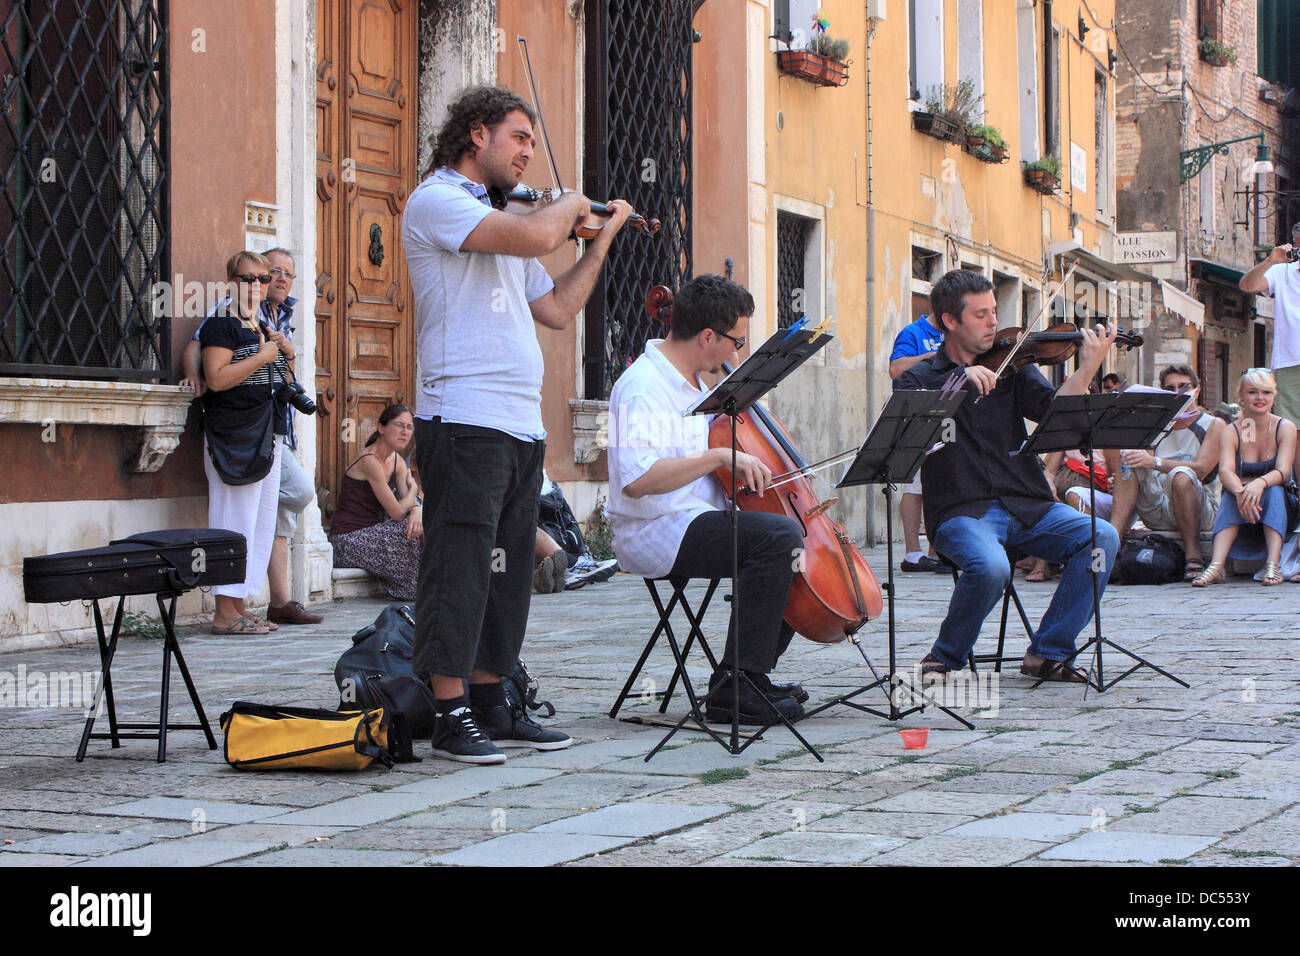 Street musicians playing classic music at Campo dei Frari, Venice - Stock Image